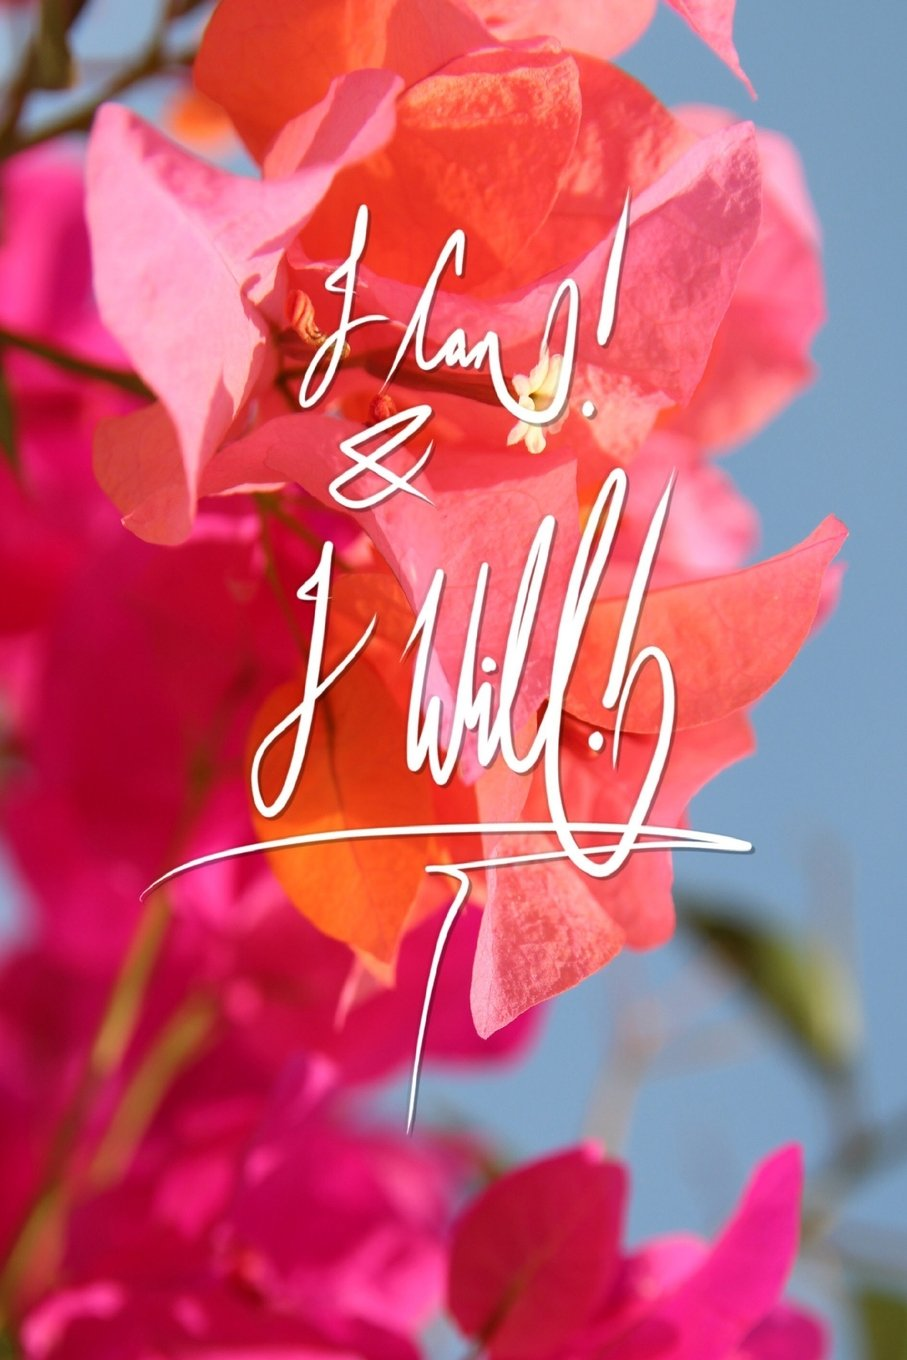 I can and I will: 6x9 Inch Lined A journal designed to remind you that you can, and you will!! - Pink, Flower, Bougainvillea, nature, colorful, Calligraphy Art with photography, GIFT IDEA pdf epub